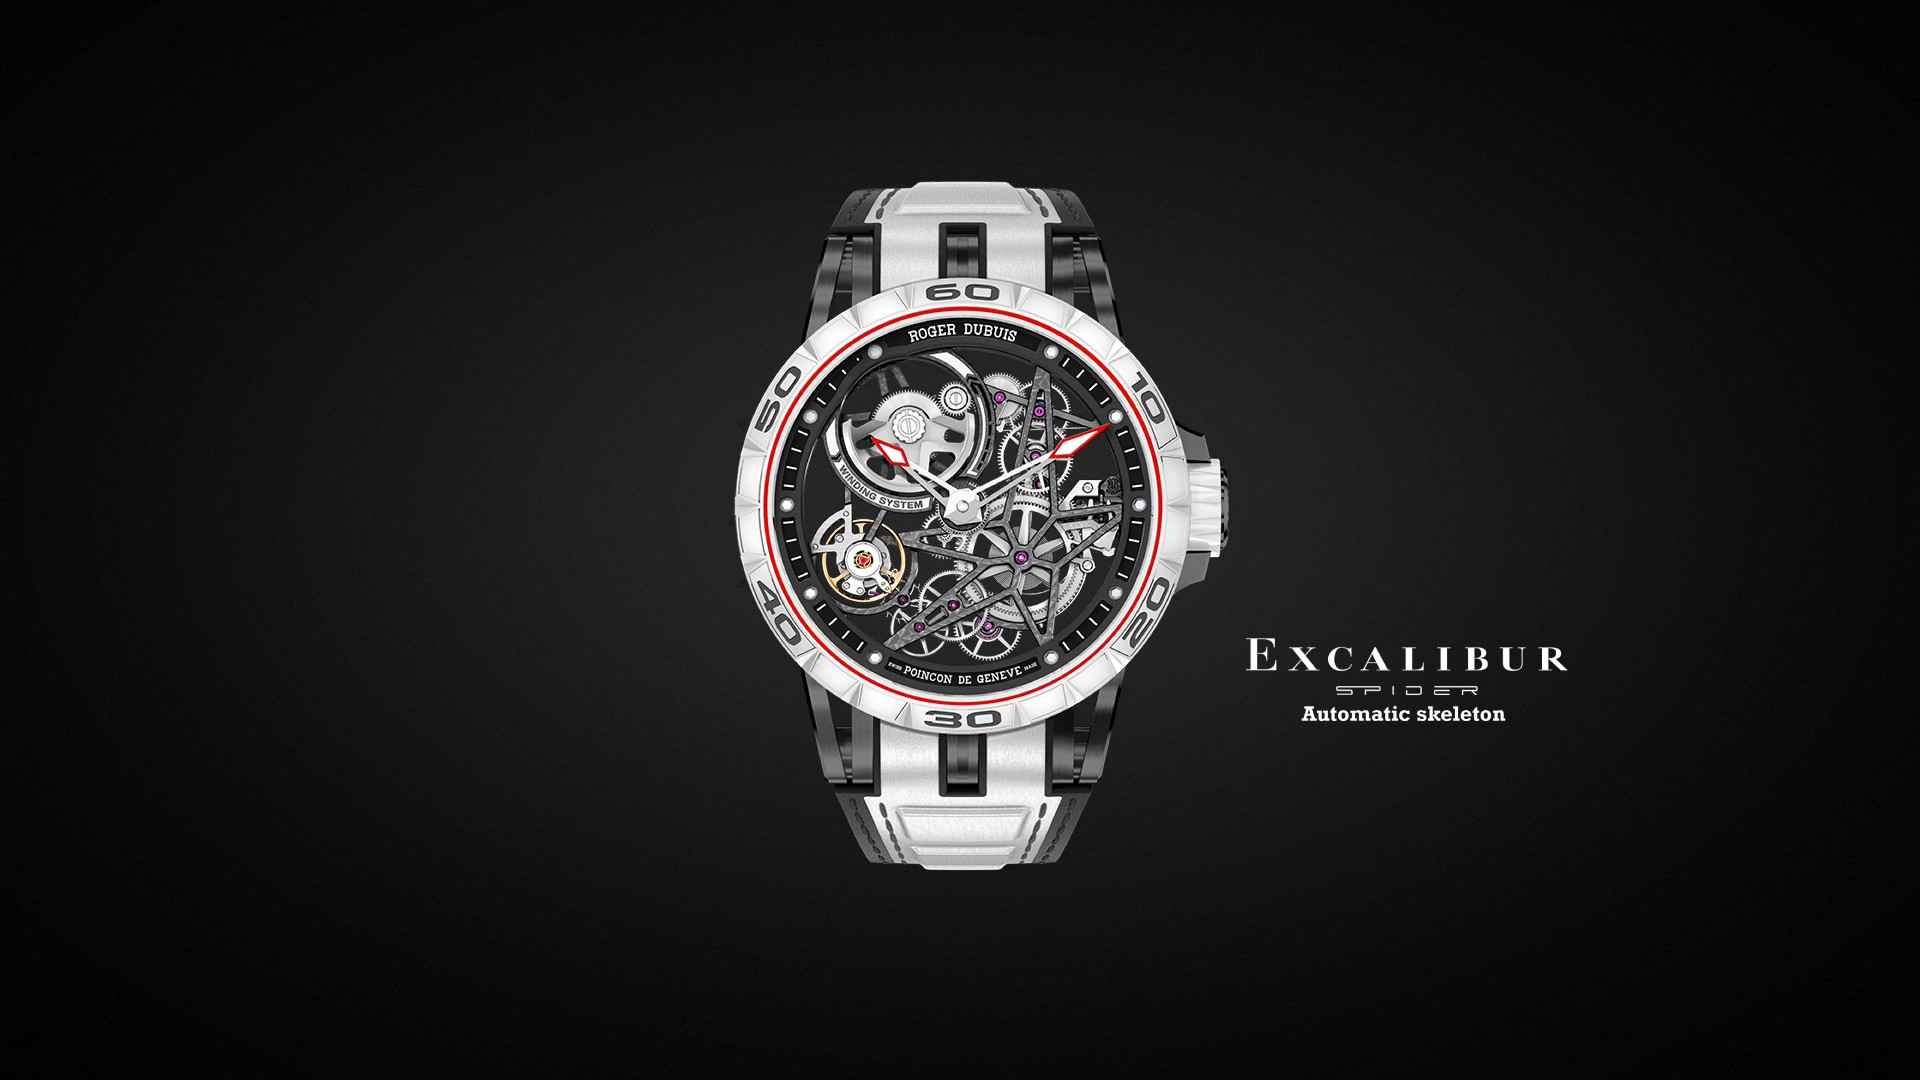 Excalibur Spider Skeleton Automatic - Japan Limited Edition